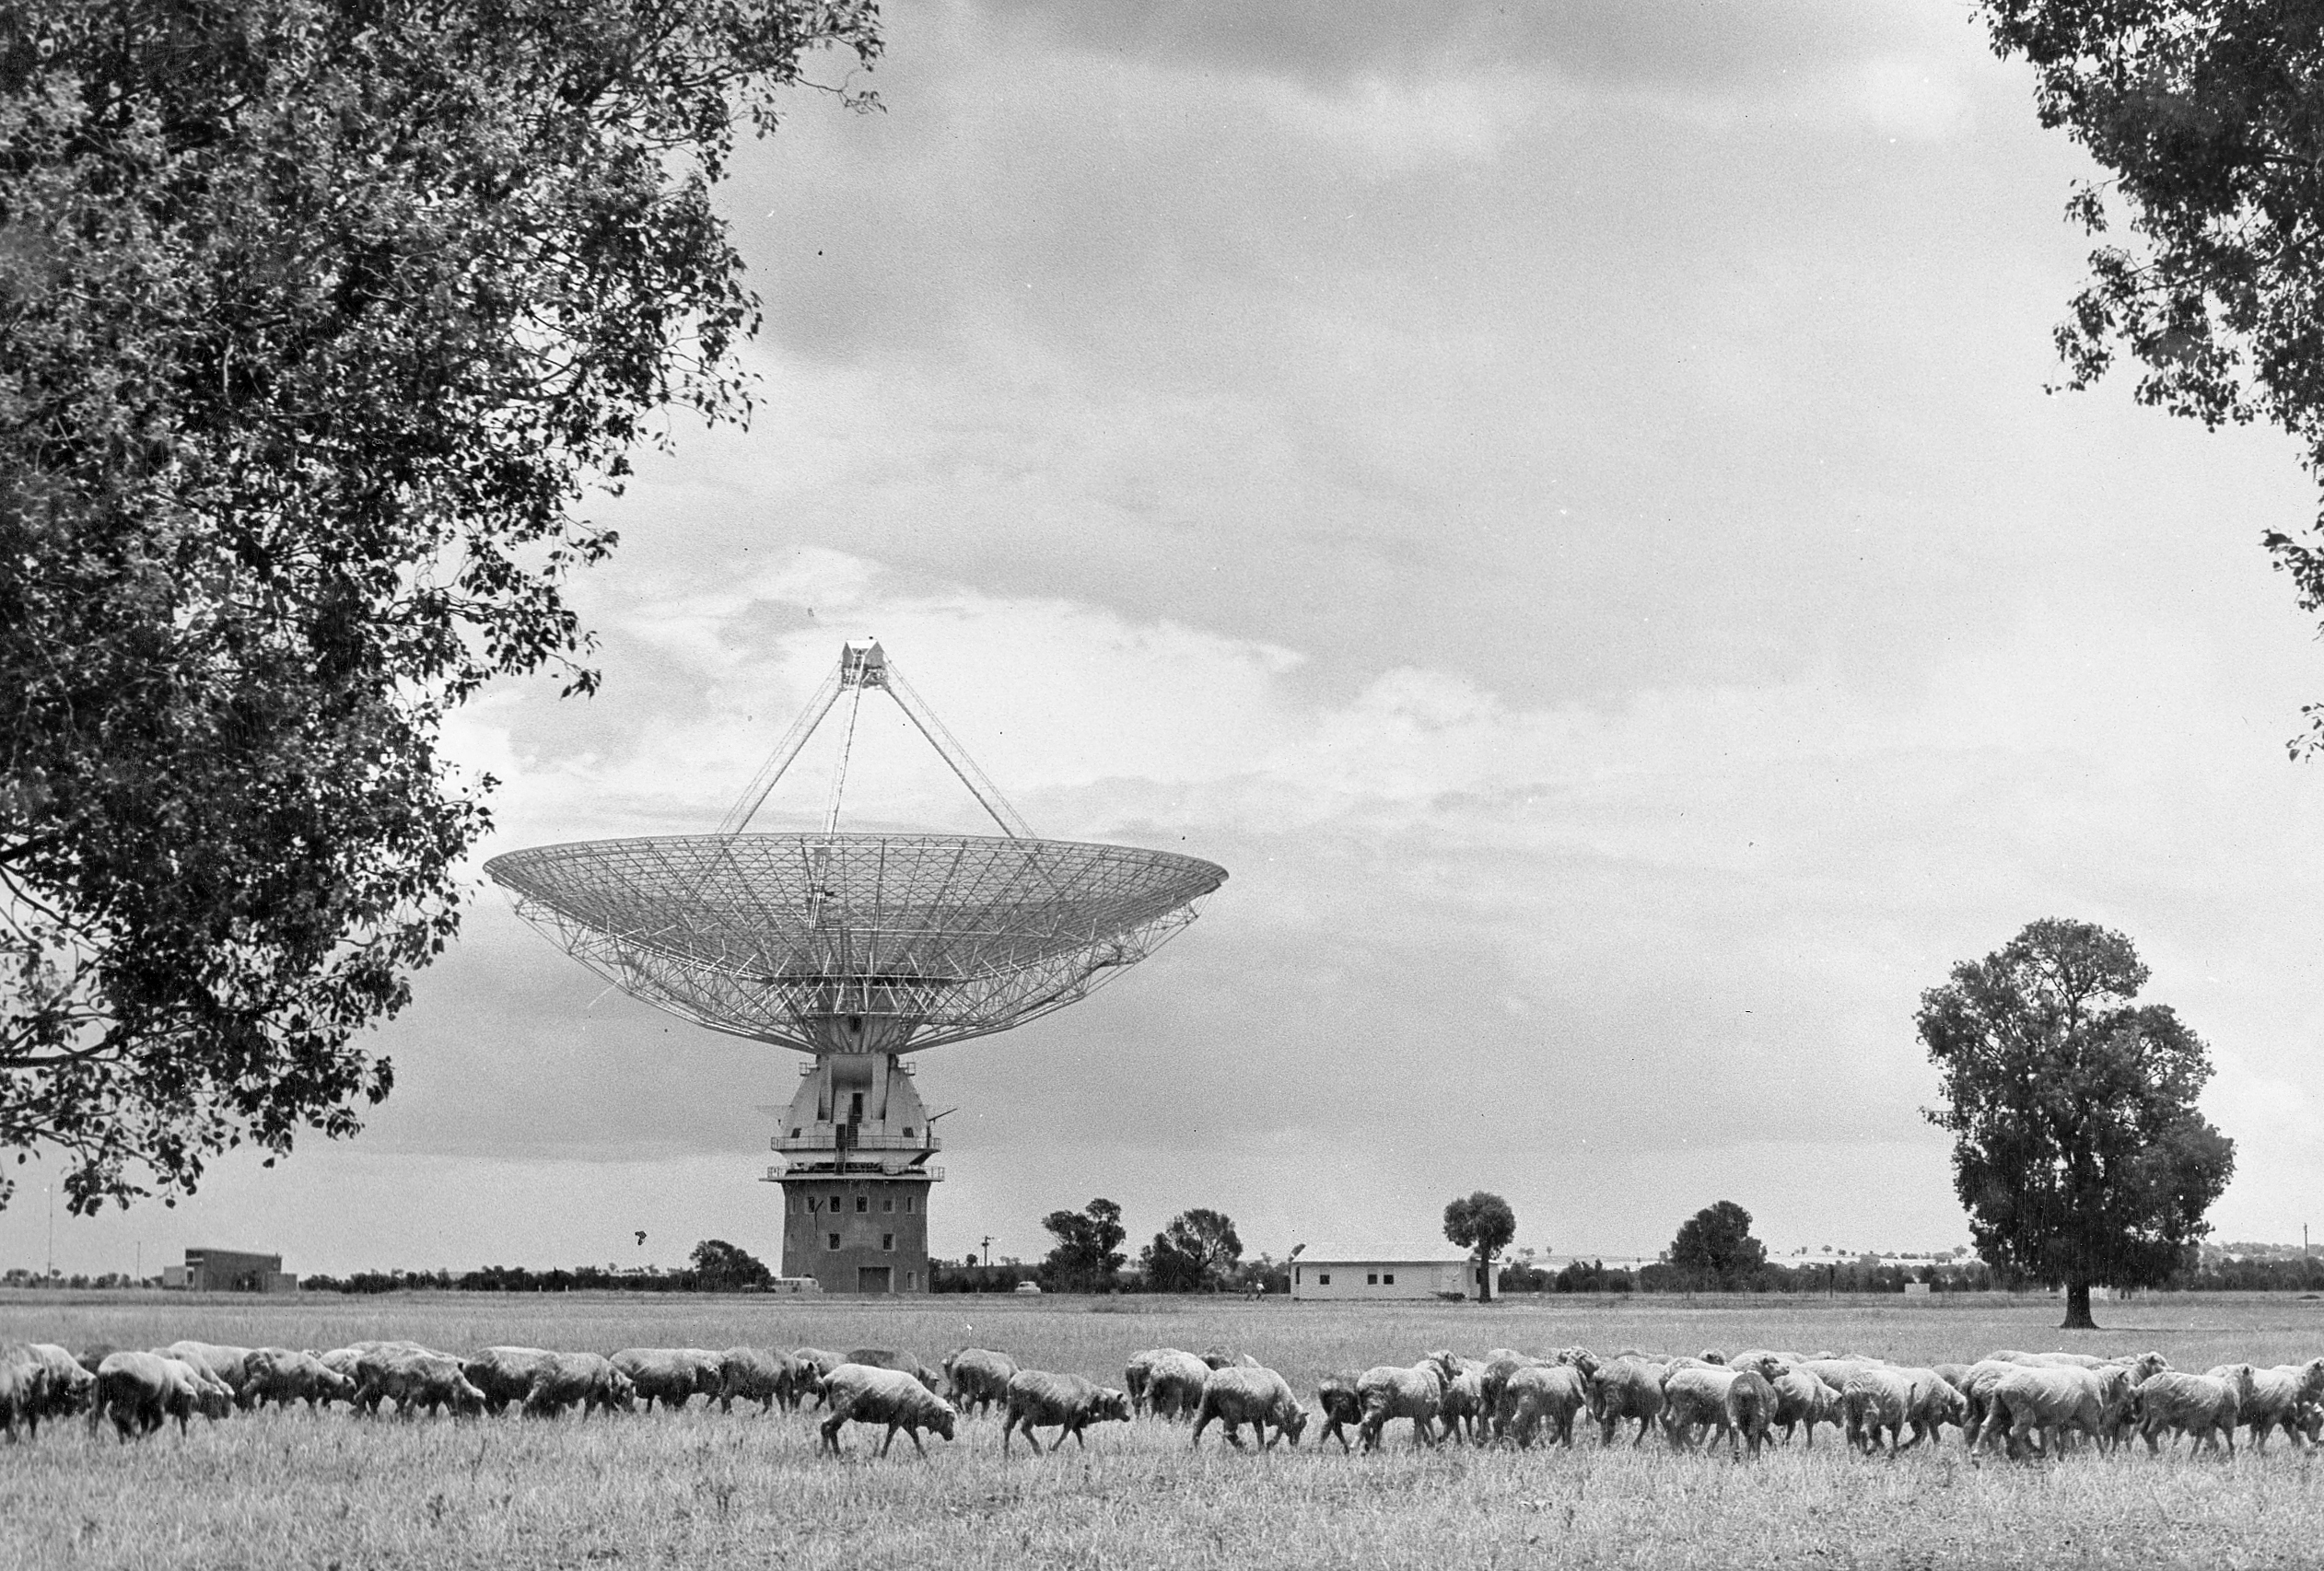 Black and white photo of the Parkes radio telescope with a flock of sheep in the foreground.